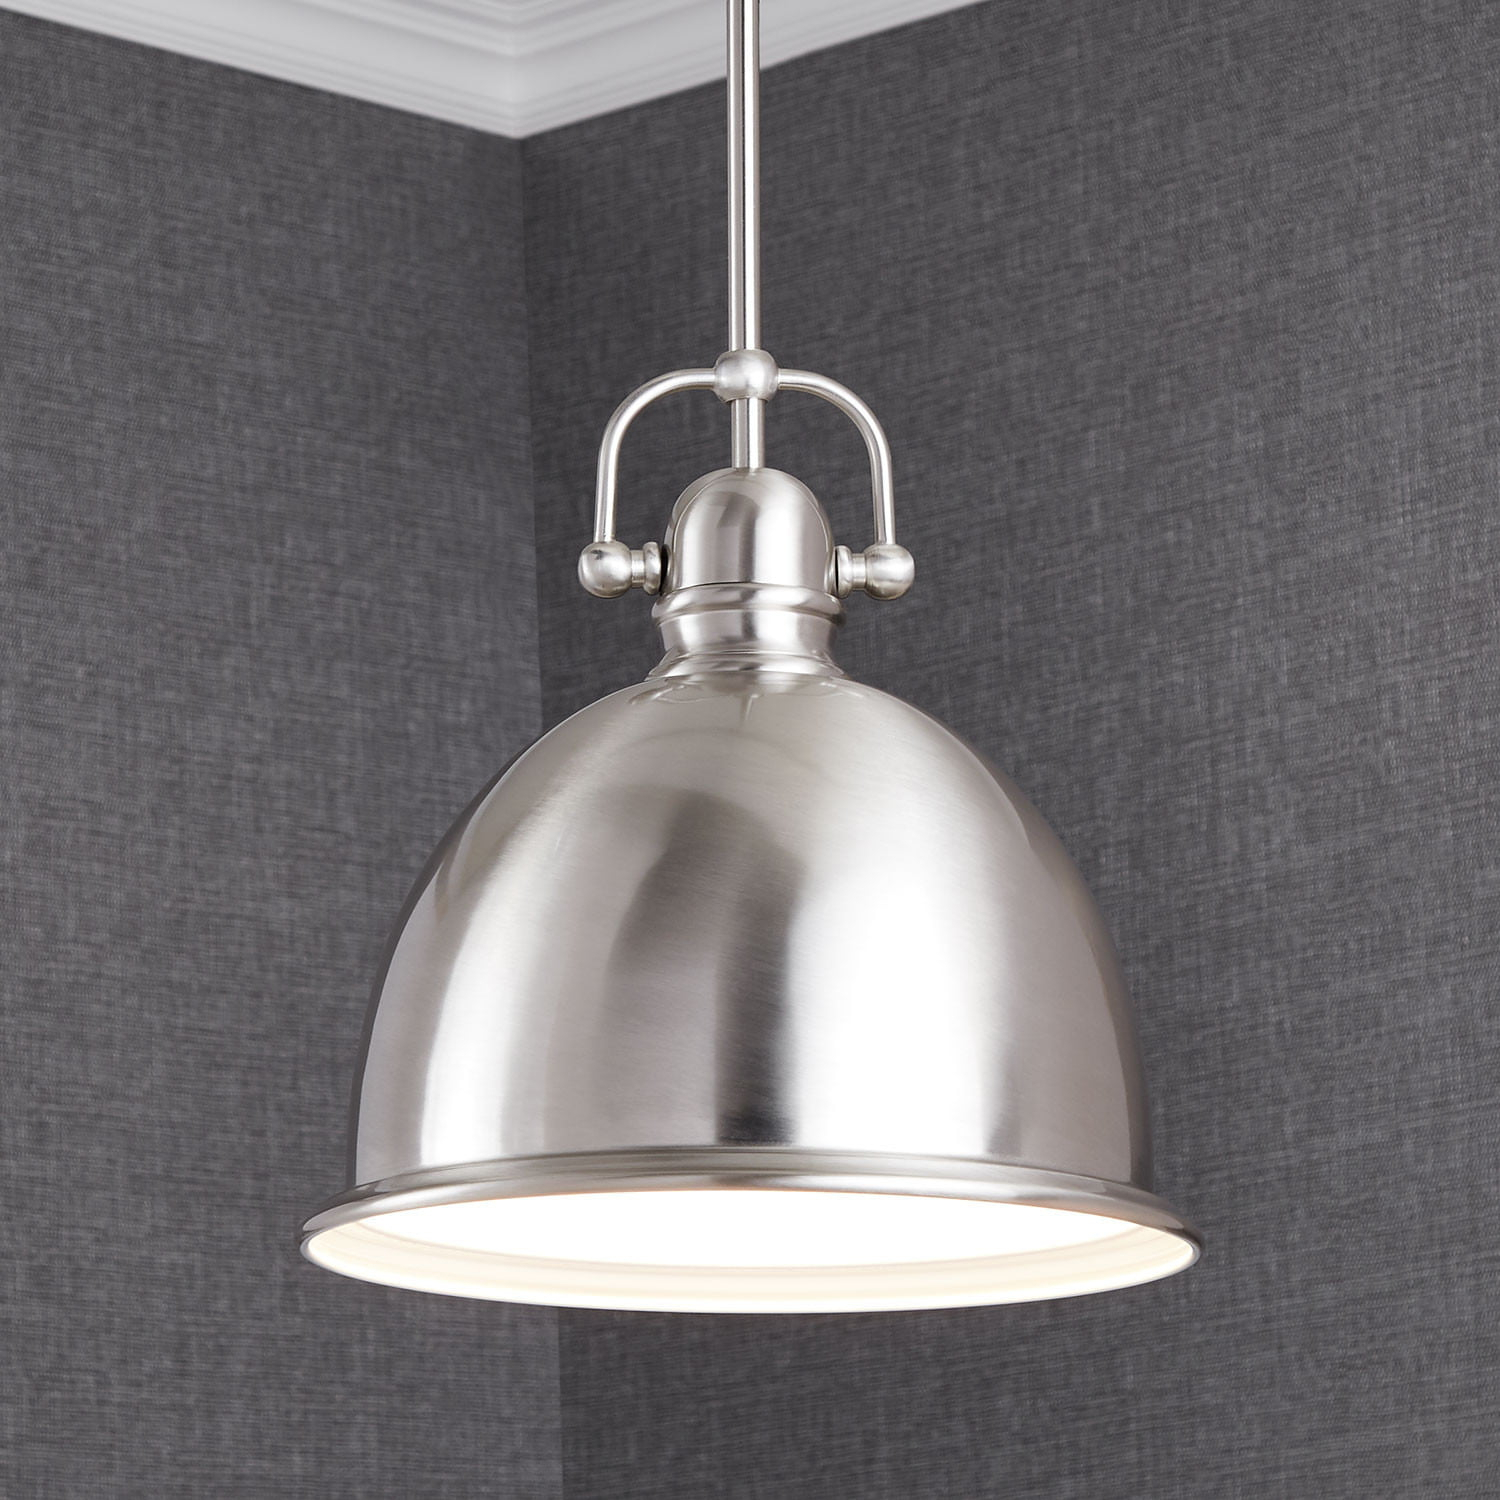 Edgar Dome Pendant Light - Single Light pertaining to 1-Light Single Dome Pendants (Image 9 of 30)